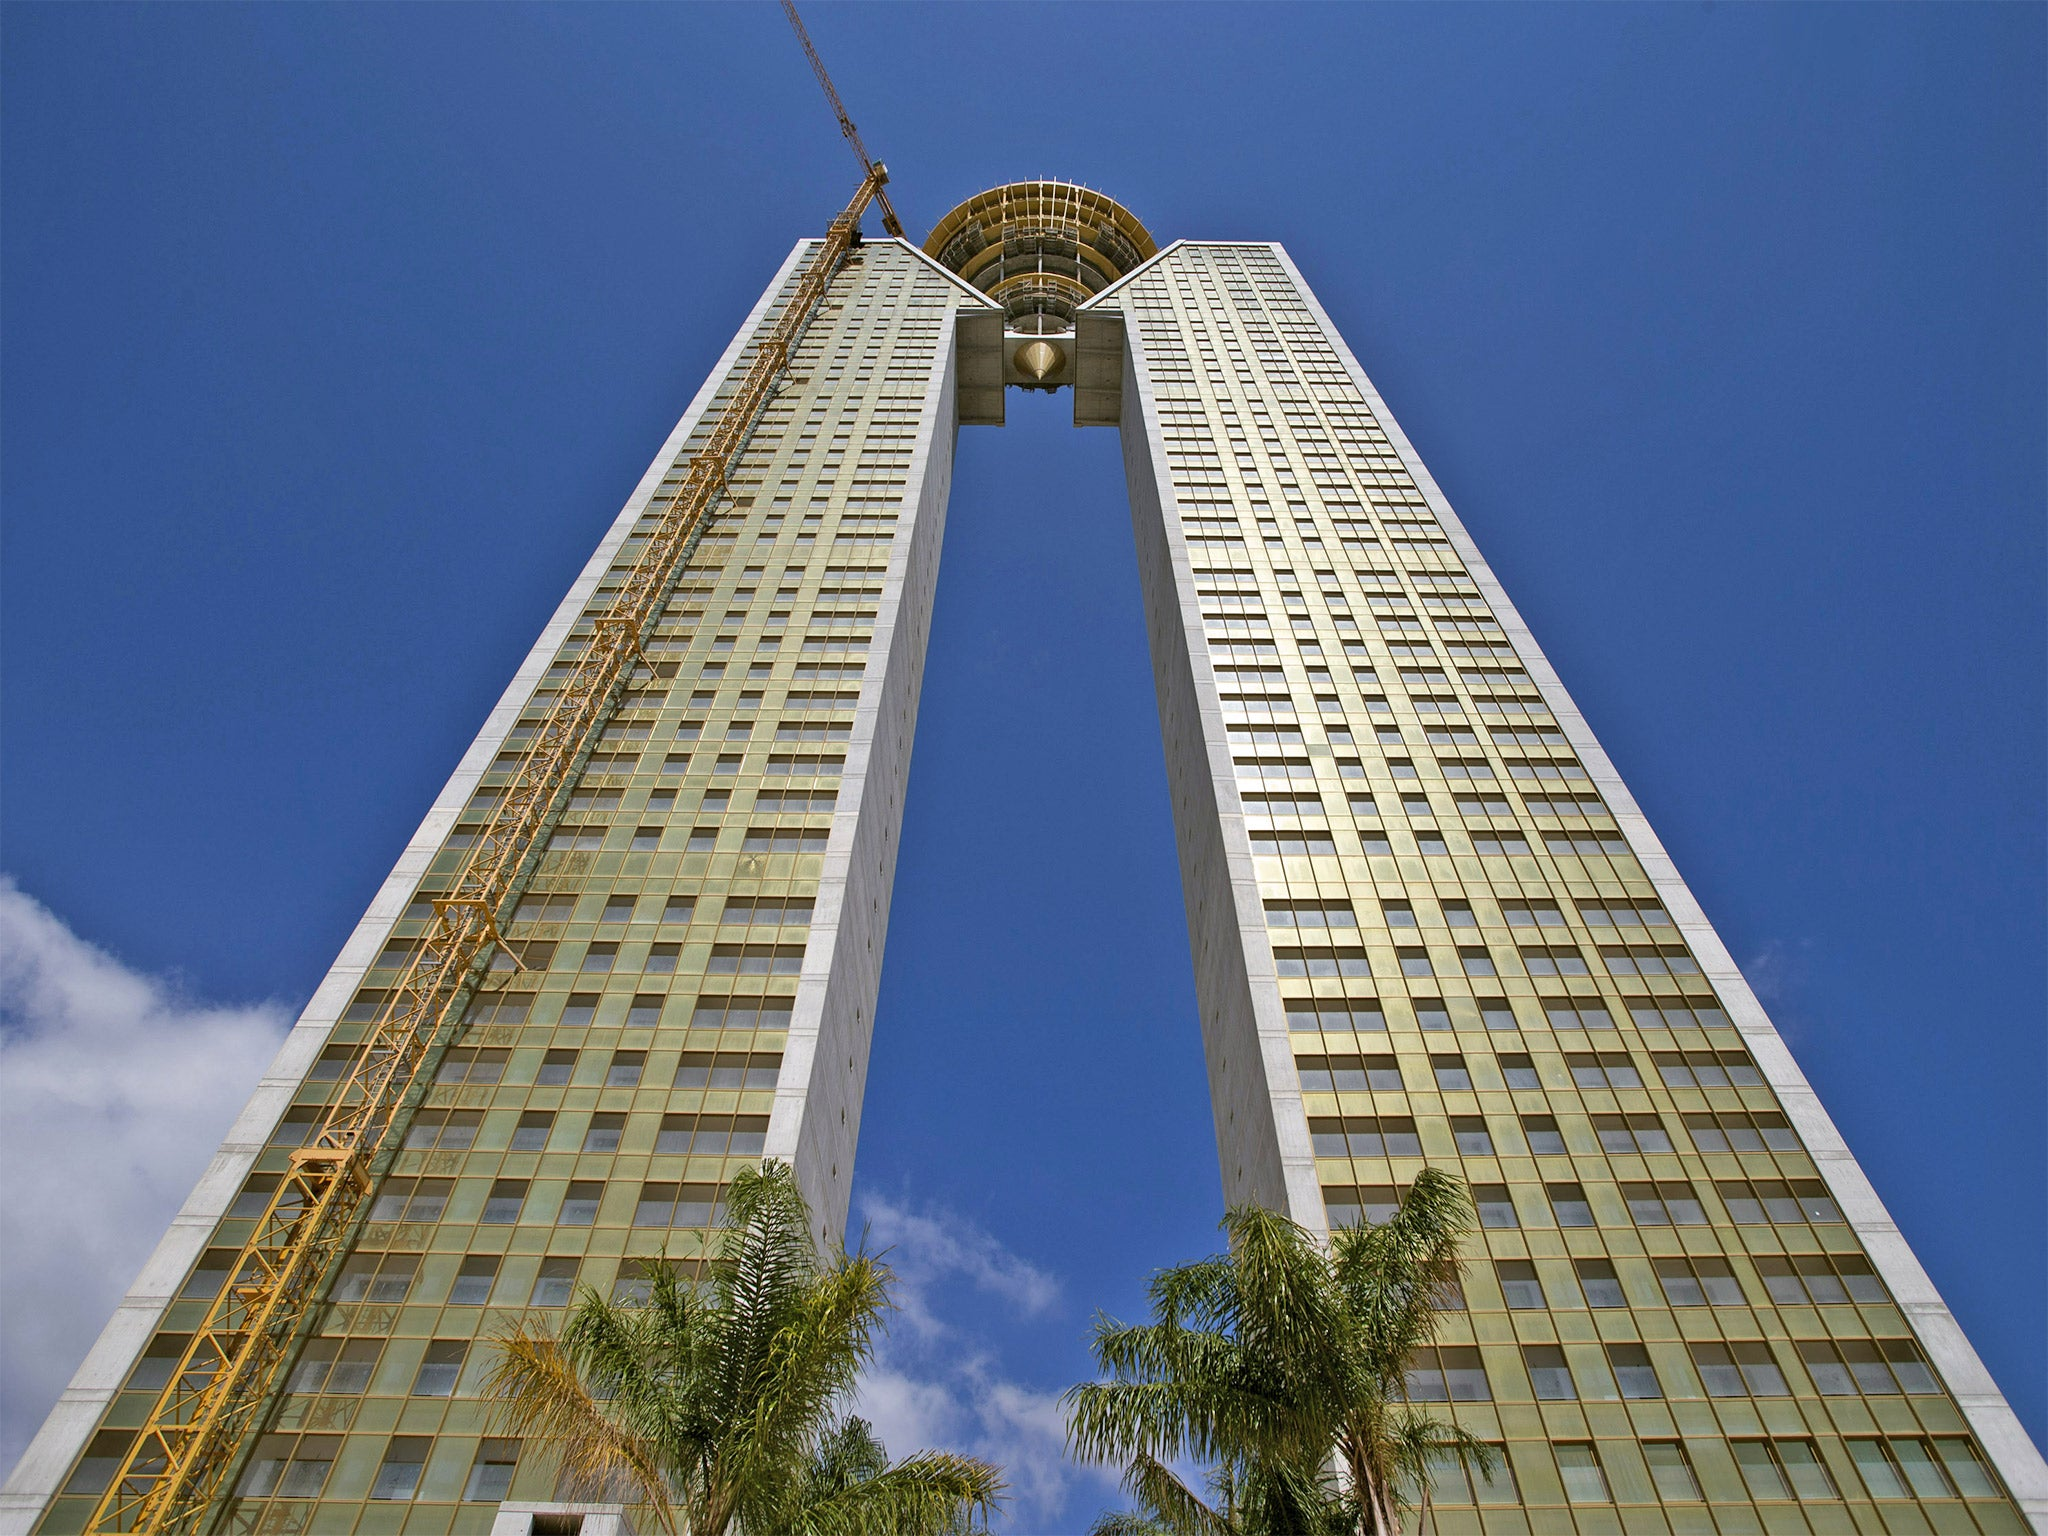 Benidorm S Towering Monument To Spain S Debt Disaster